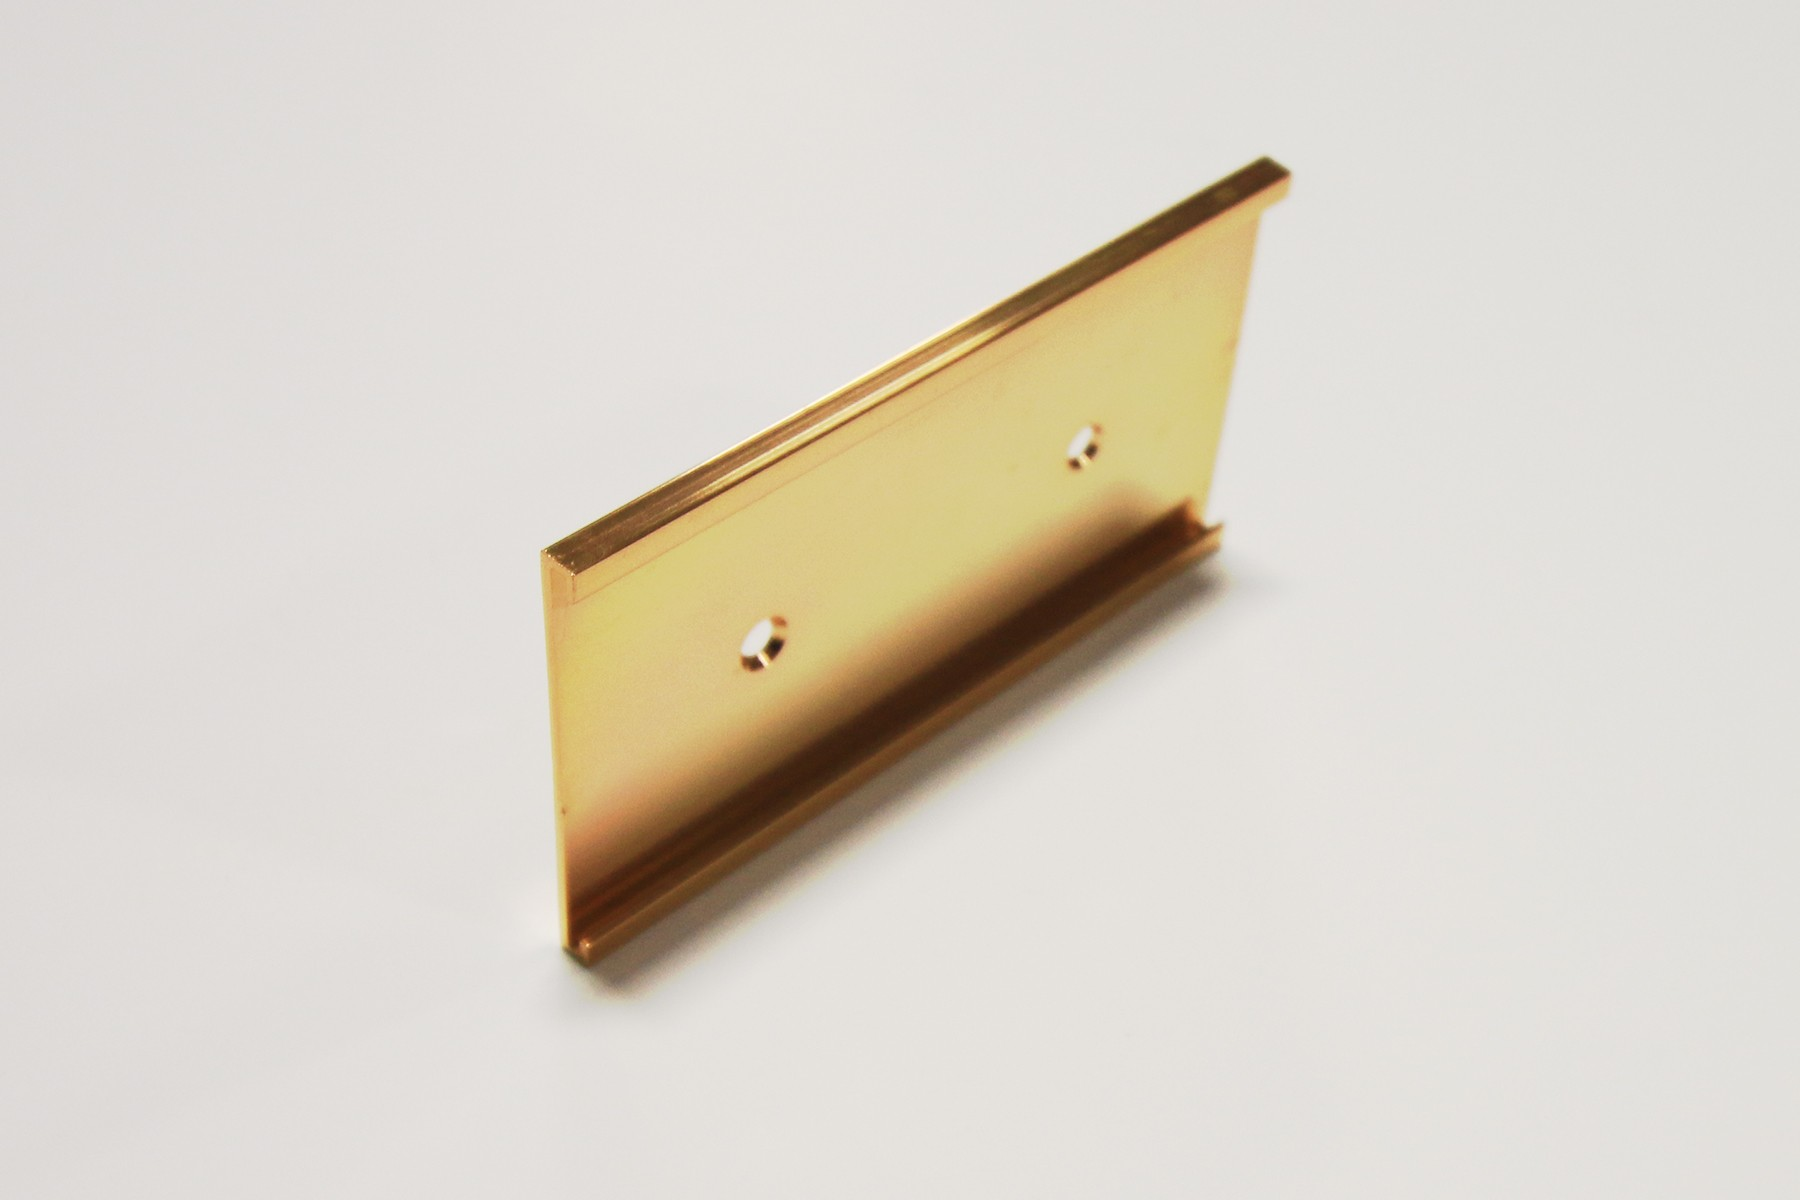 2 x 10 Wall Holder, Gold -300-